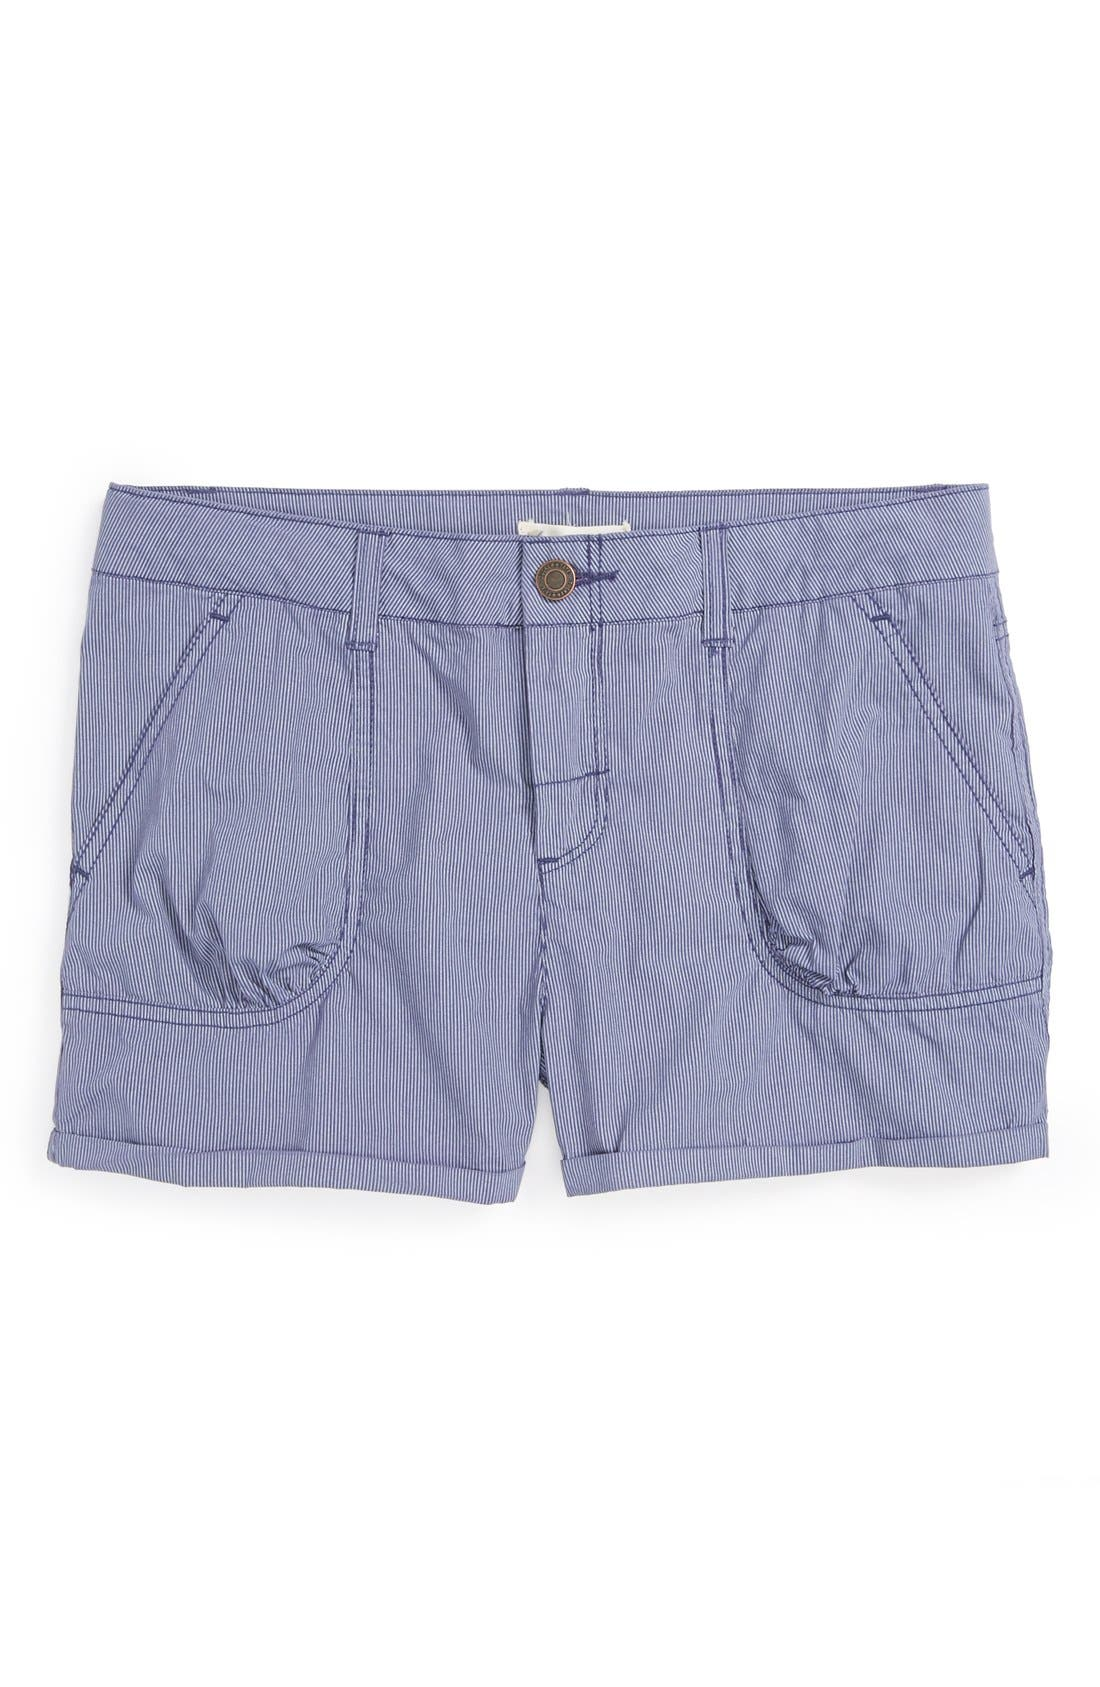 Alternate Image 1 Selected - Tucker + Tate 'Mindy' Shorts (Big Girls)